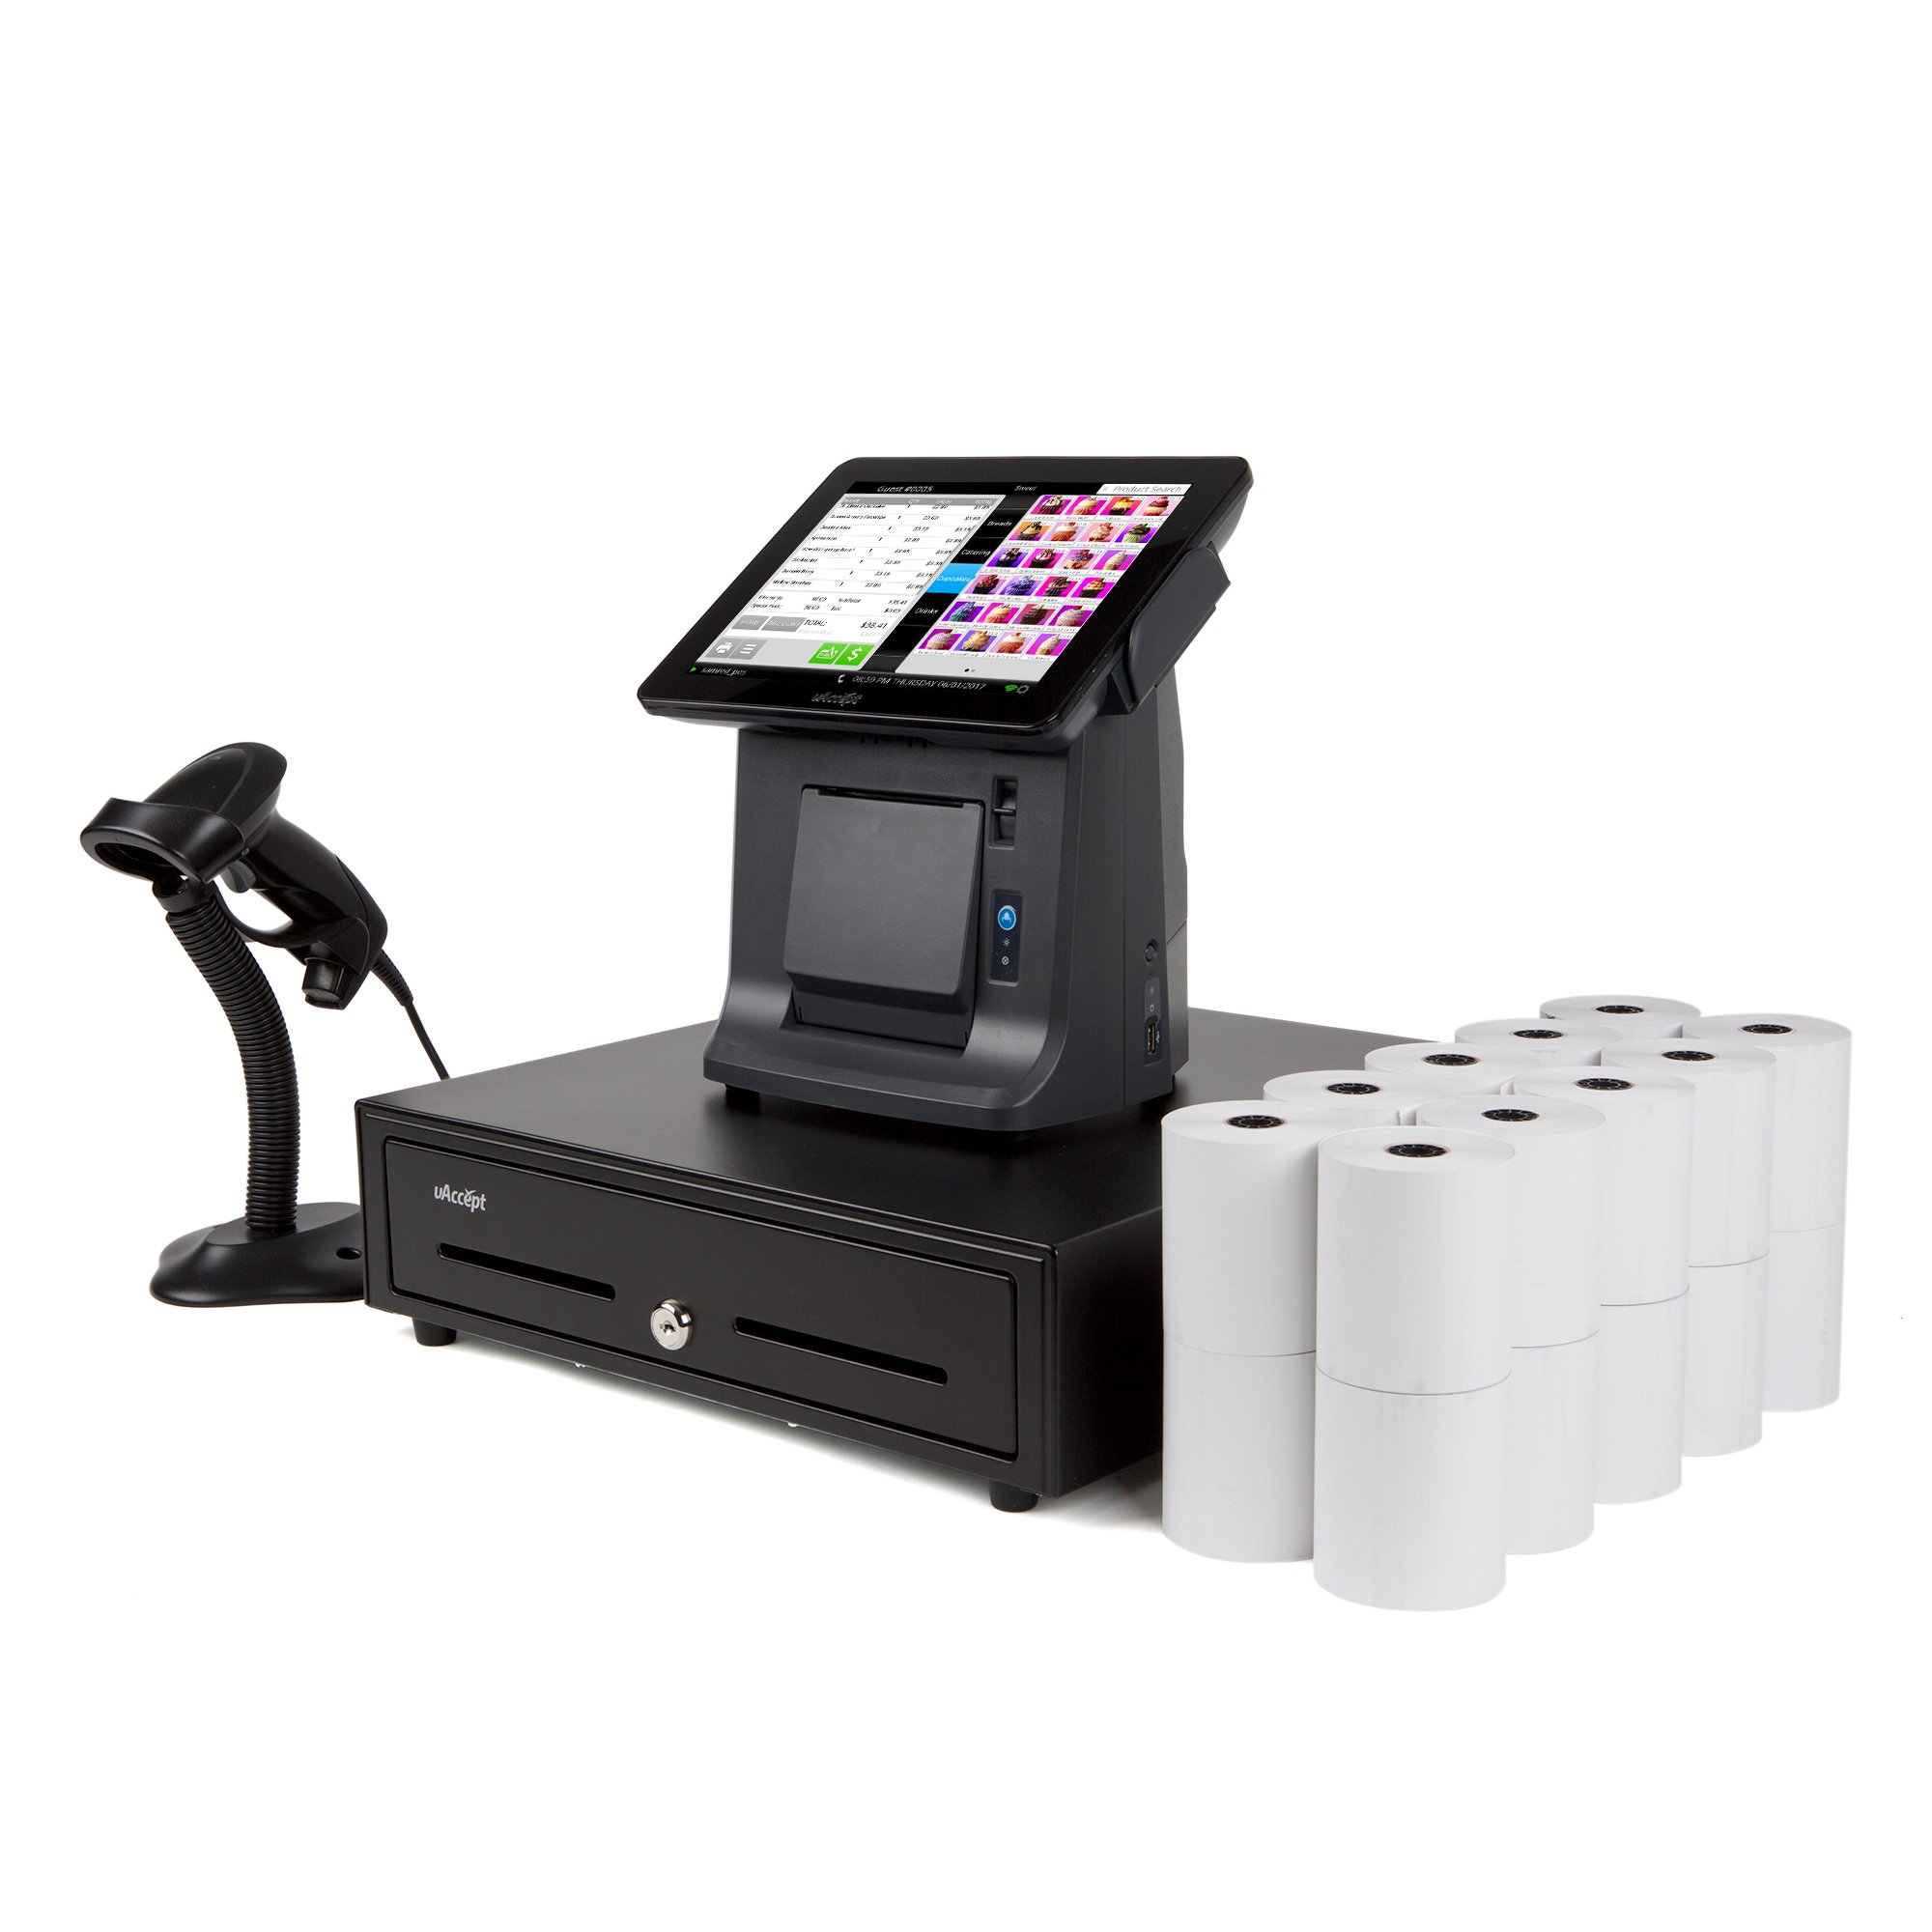 uAccept Complete POS Including 9.7'' Touch Screen, 20 Rolls of Thermal Receipt Paper, Barcode Scanner by Processing Point (Image #1)